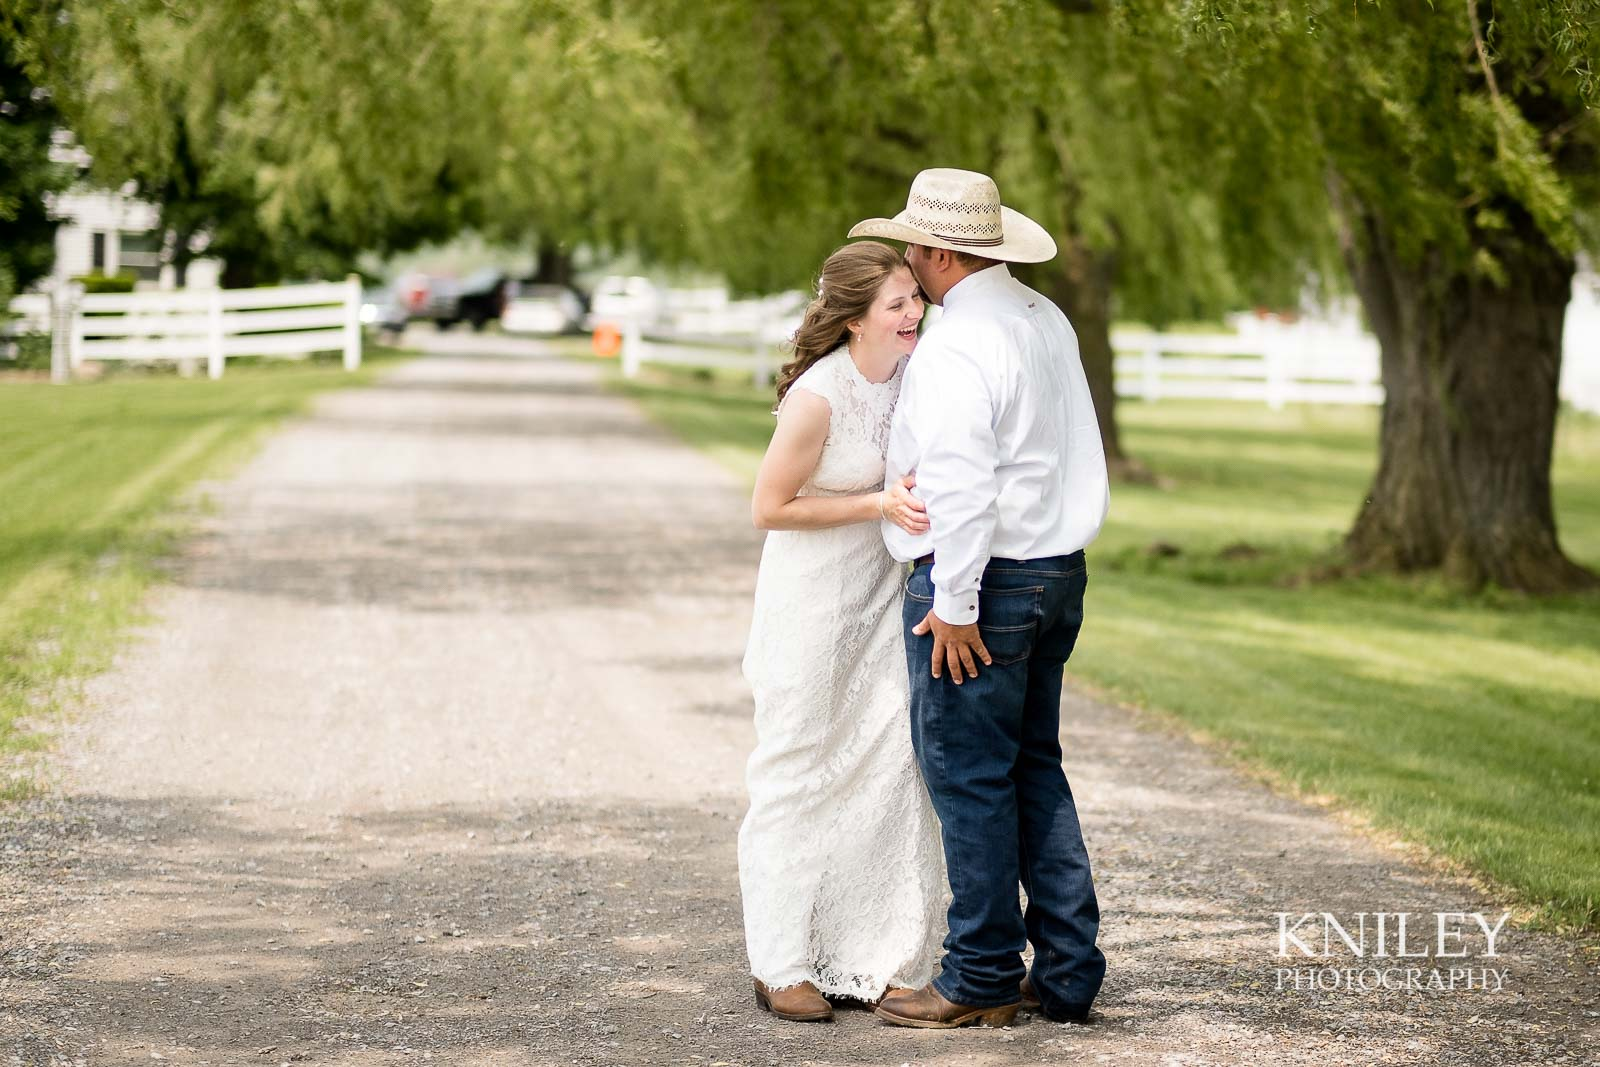 16-Western-New-York-farm-wedding-Kniley-Photography.jpg